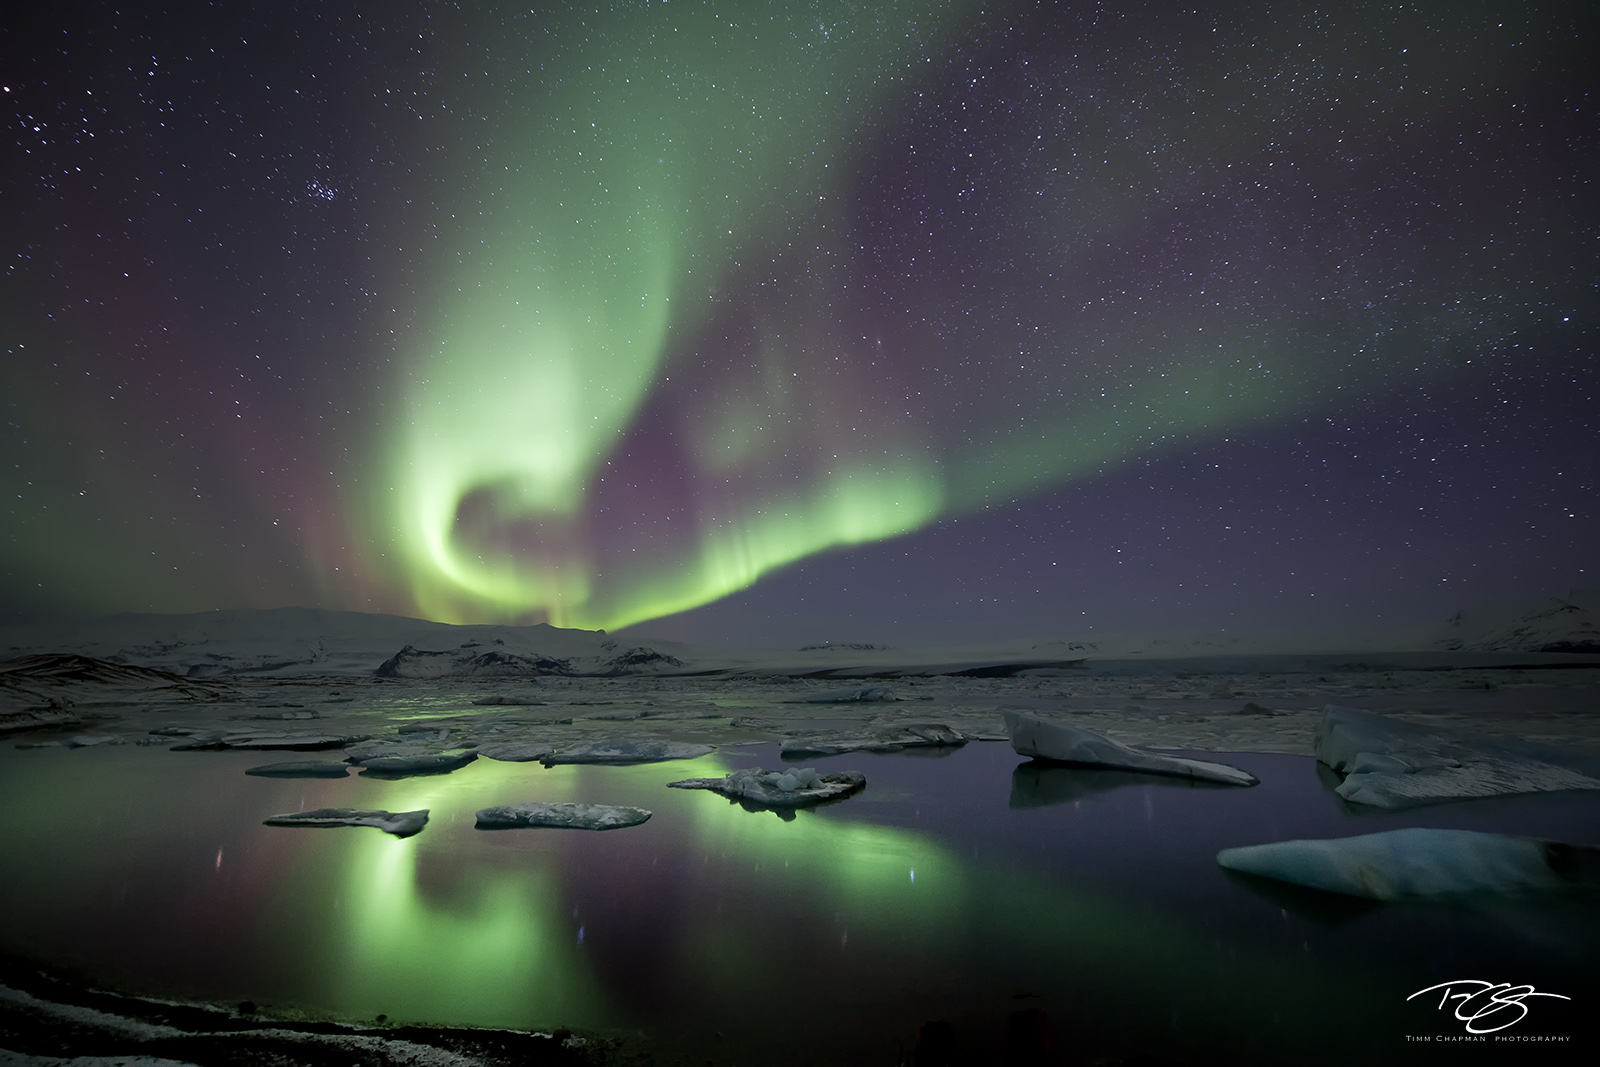 iceland, aurora, borealis, ribbon of light, jokulsarlon, Jökulsárlón, glacier lagoon, mountains, reflection, water, green, violet, stars, northern lights, spirit, coronal mass ejection, solar flare